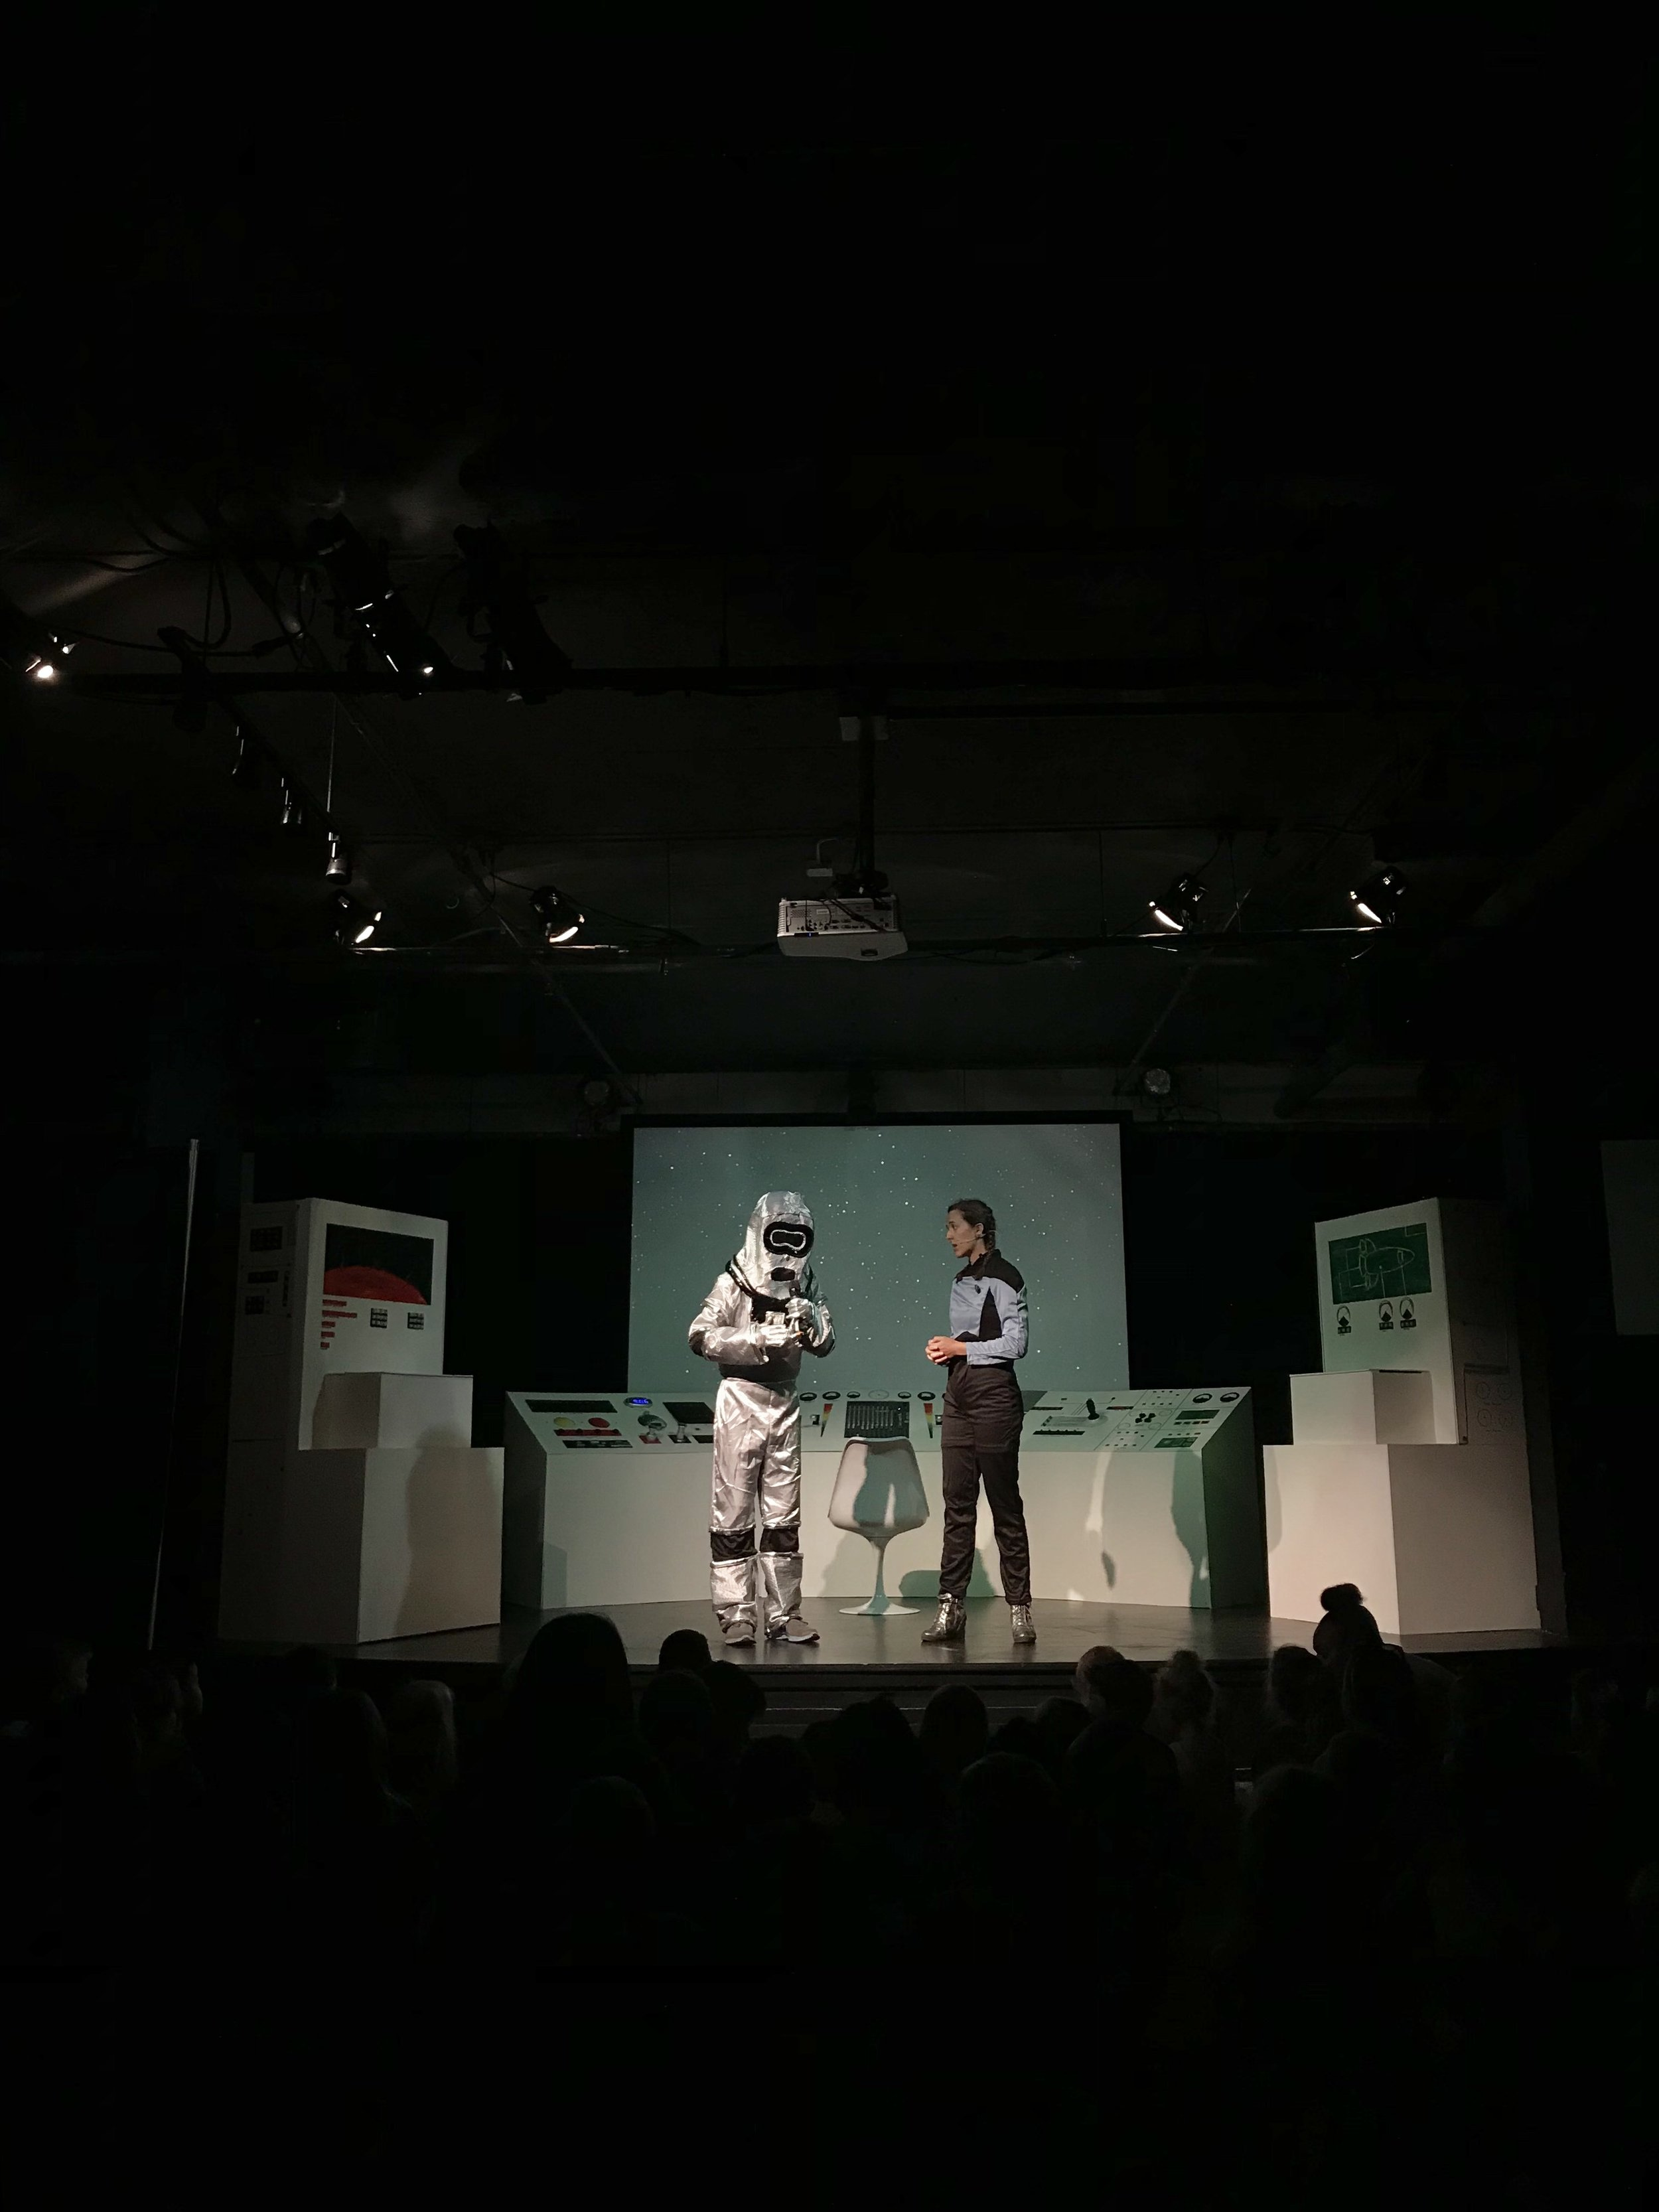 Scene from a short play at Soul City Kids Camp 2018